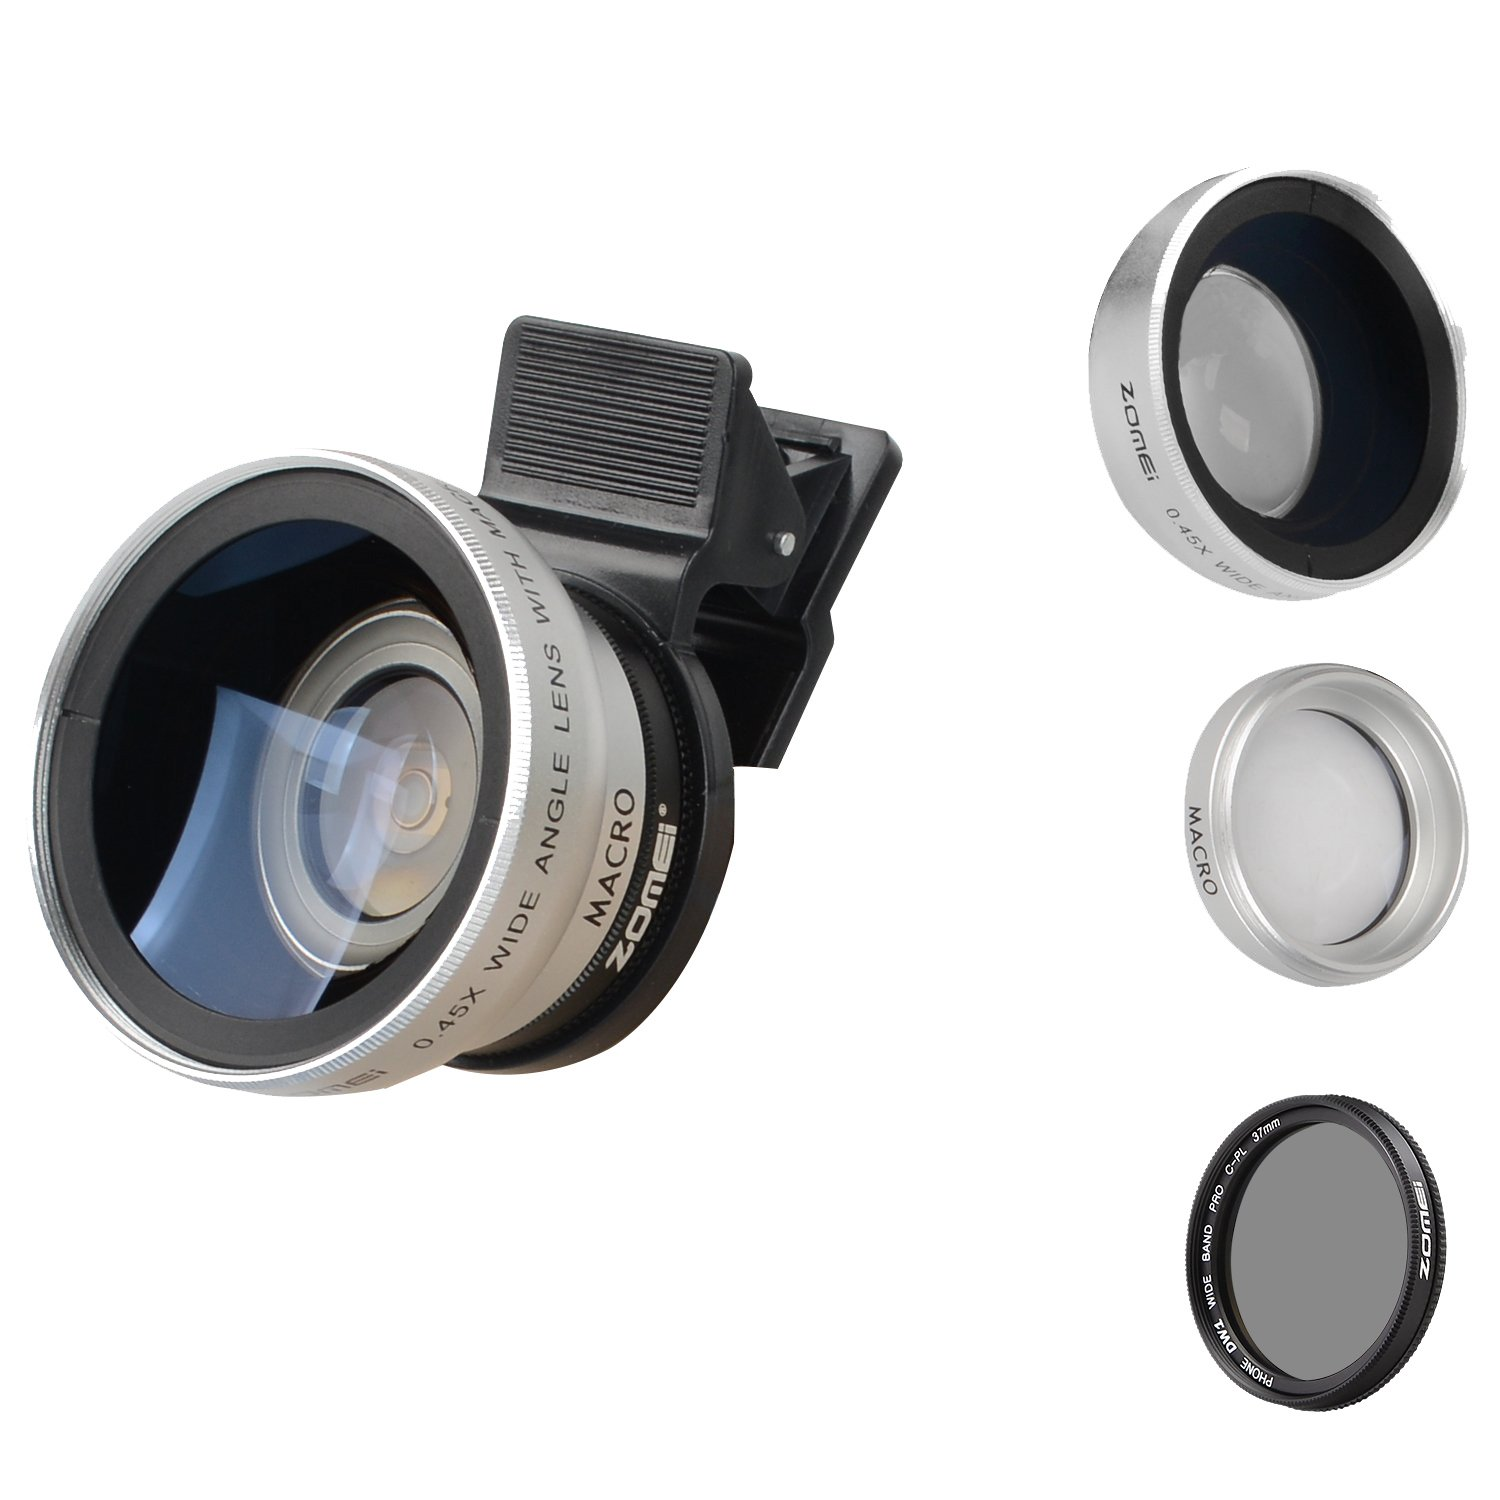 ZoMei iPhone Lens 3 in 1 Cell Phone Camera Lens Kit 140 Degree Wide Angle Lens + 10X Macro Lens + CPL Polarizing Filter 37mm Clip iPhone Samsung Android Smartphones(Silver)